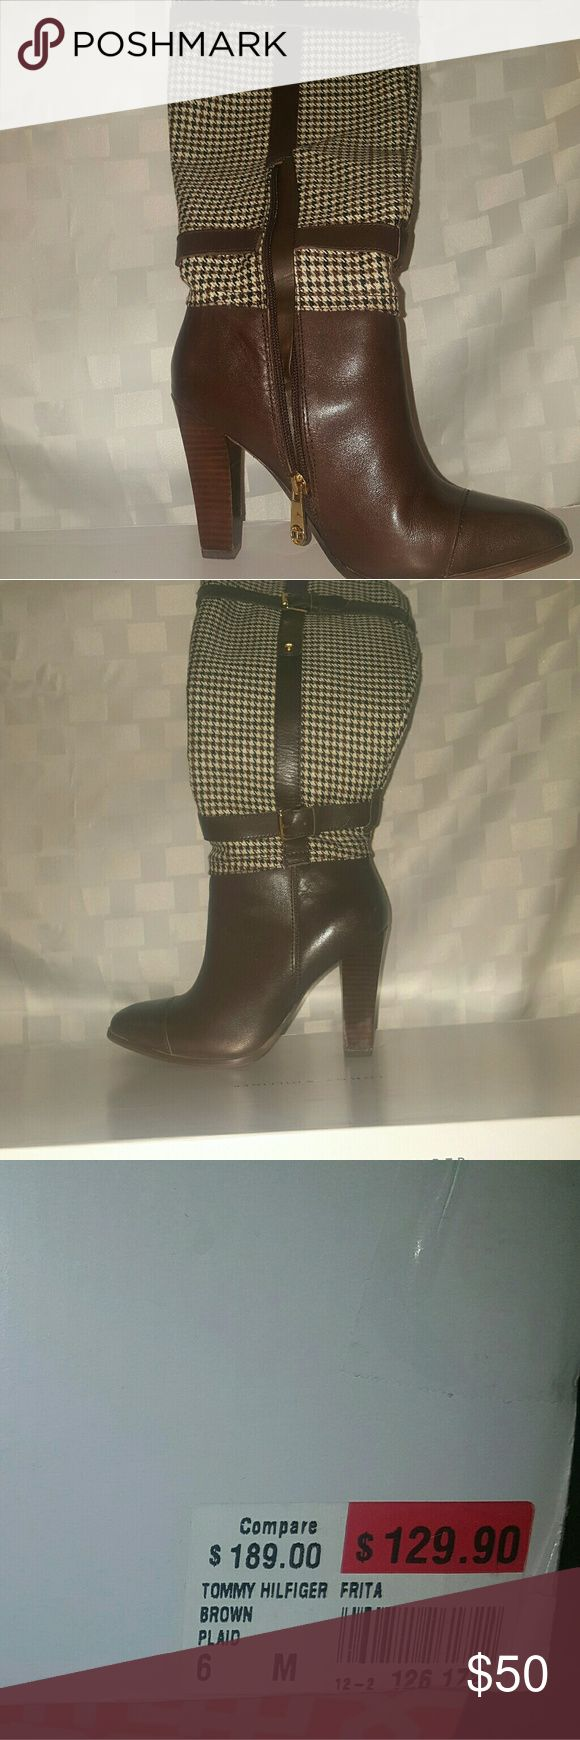 Tommy Hilfiger Women Riding Boots sz 6 Tommy Hilfiger Women Riding Boots sz 6 Tommy Hilfiger Shoes Heeled Boots